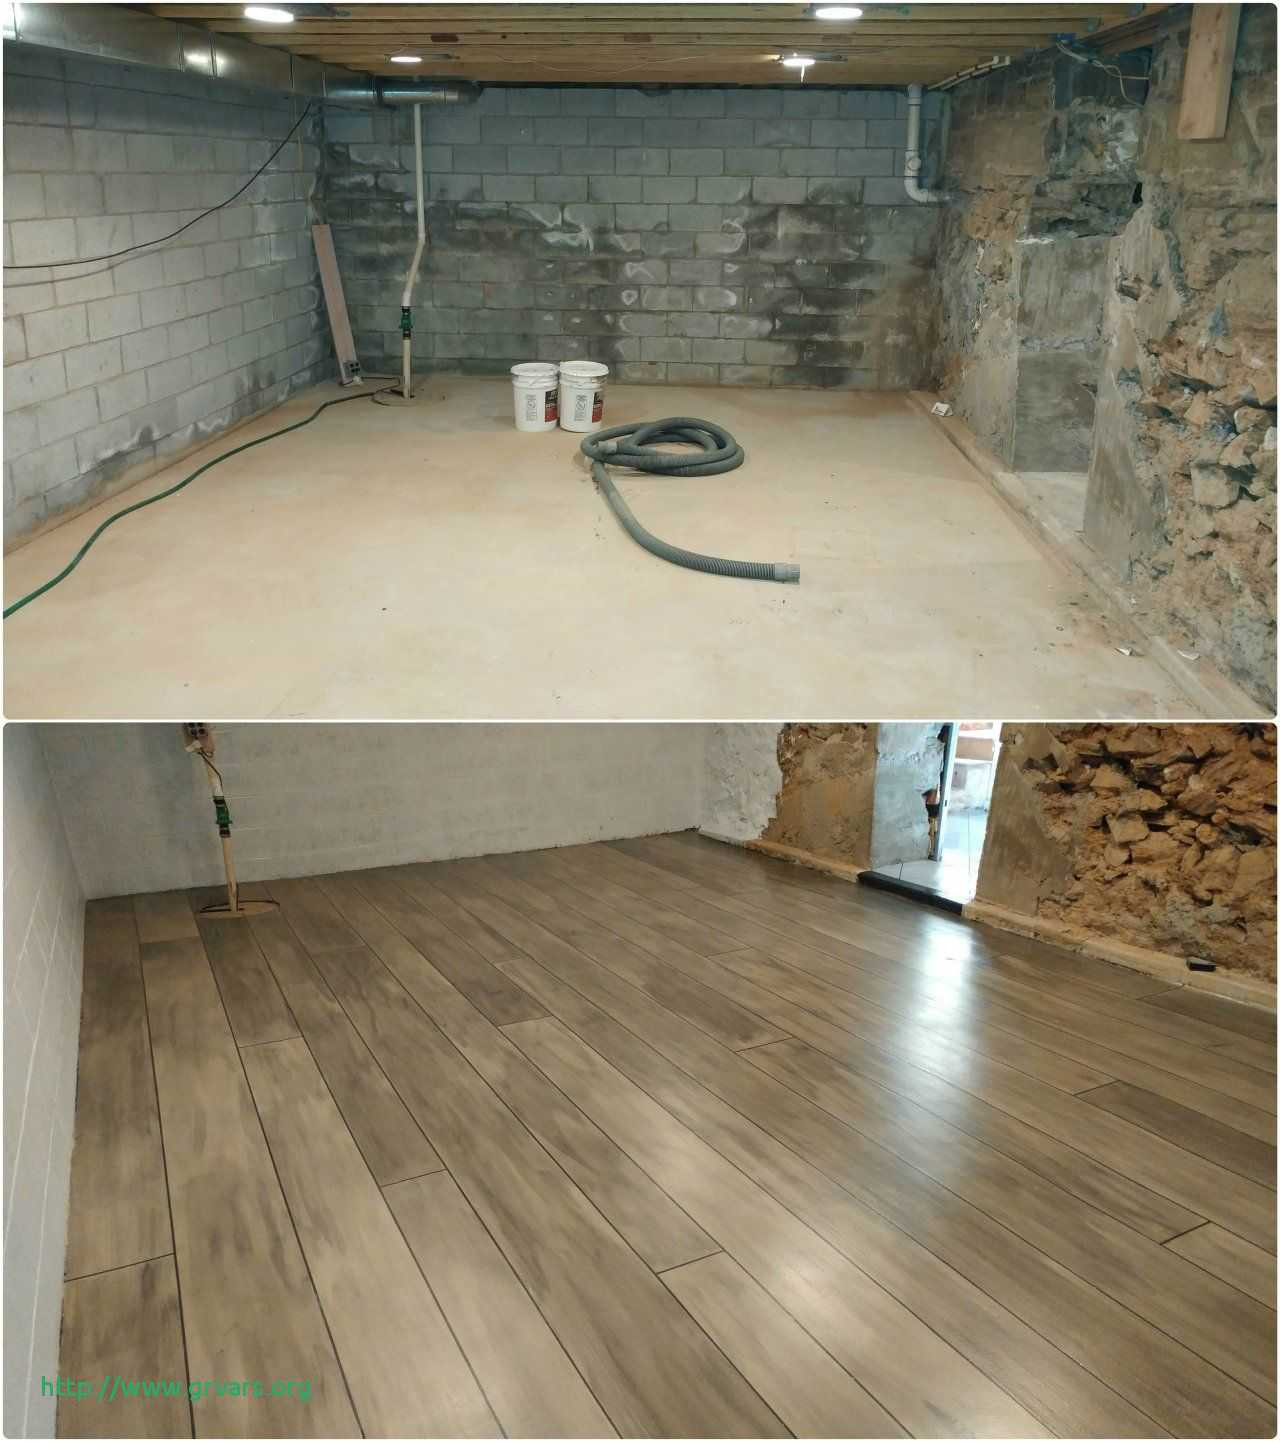 Cost to Install Hardwood Floors Lumber Liquidators Of 25 Charmant Does Hardwood Floors Increase Home Value Ideas Blog Regarding Basement Refinished with Concrete Wood Ardmore Pa